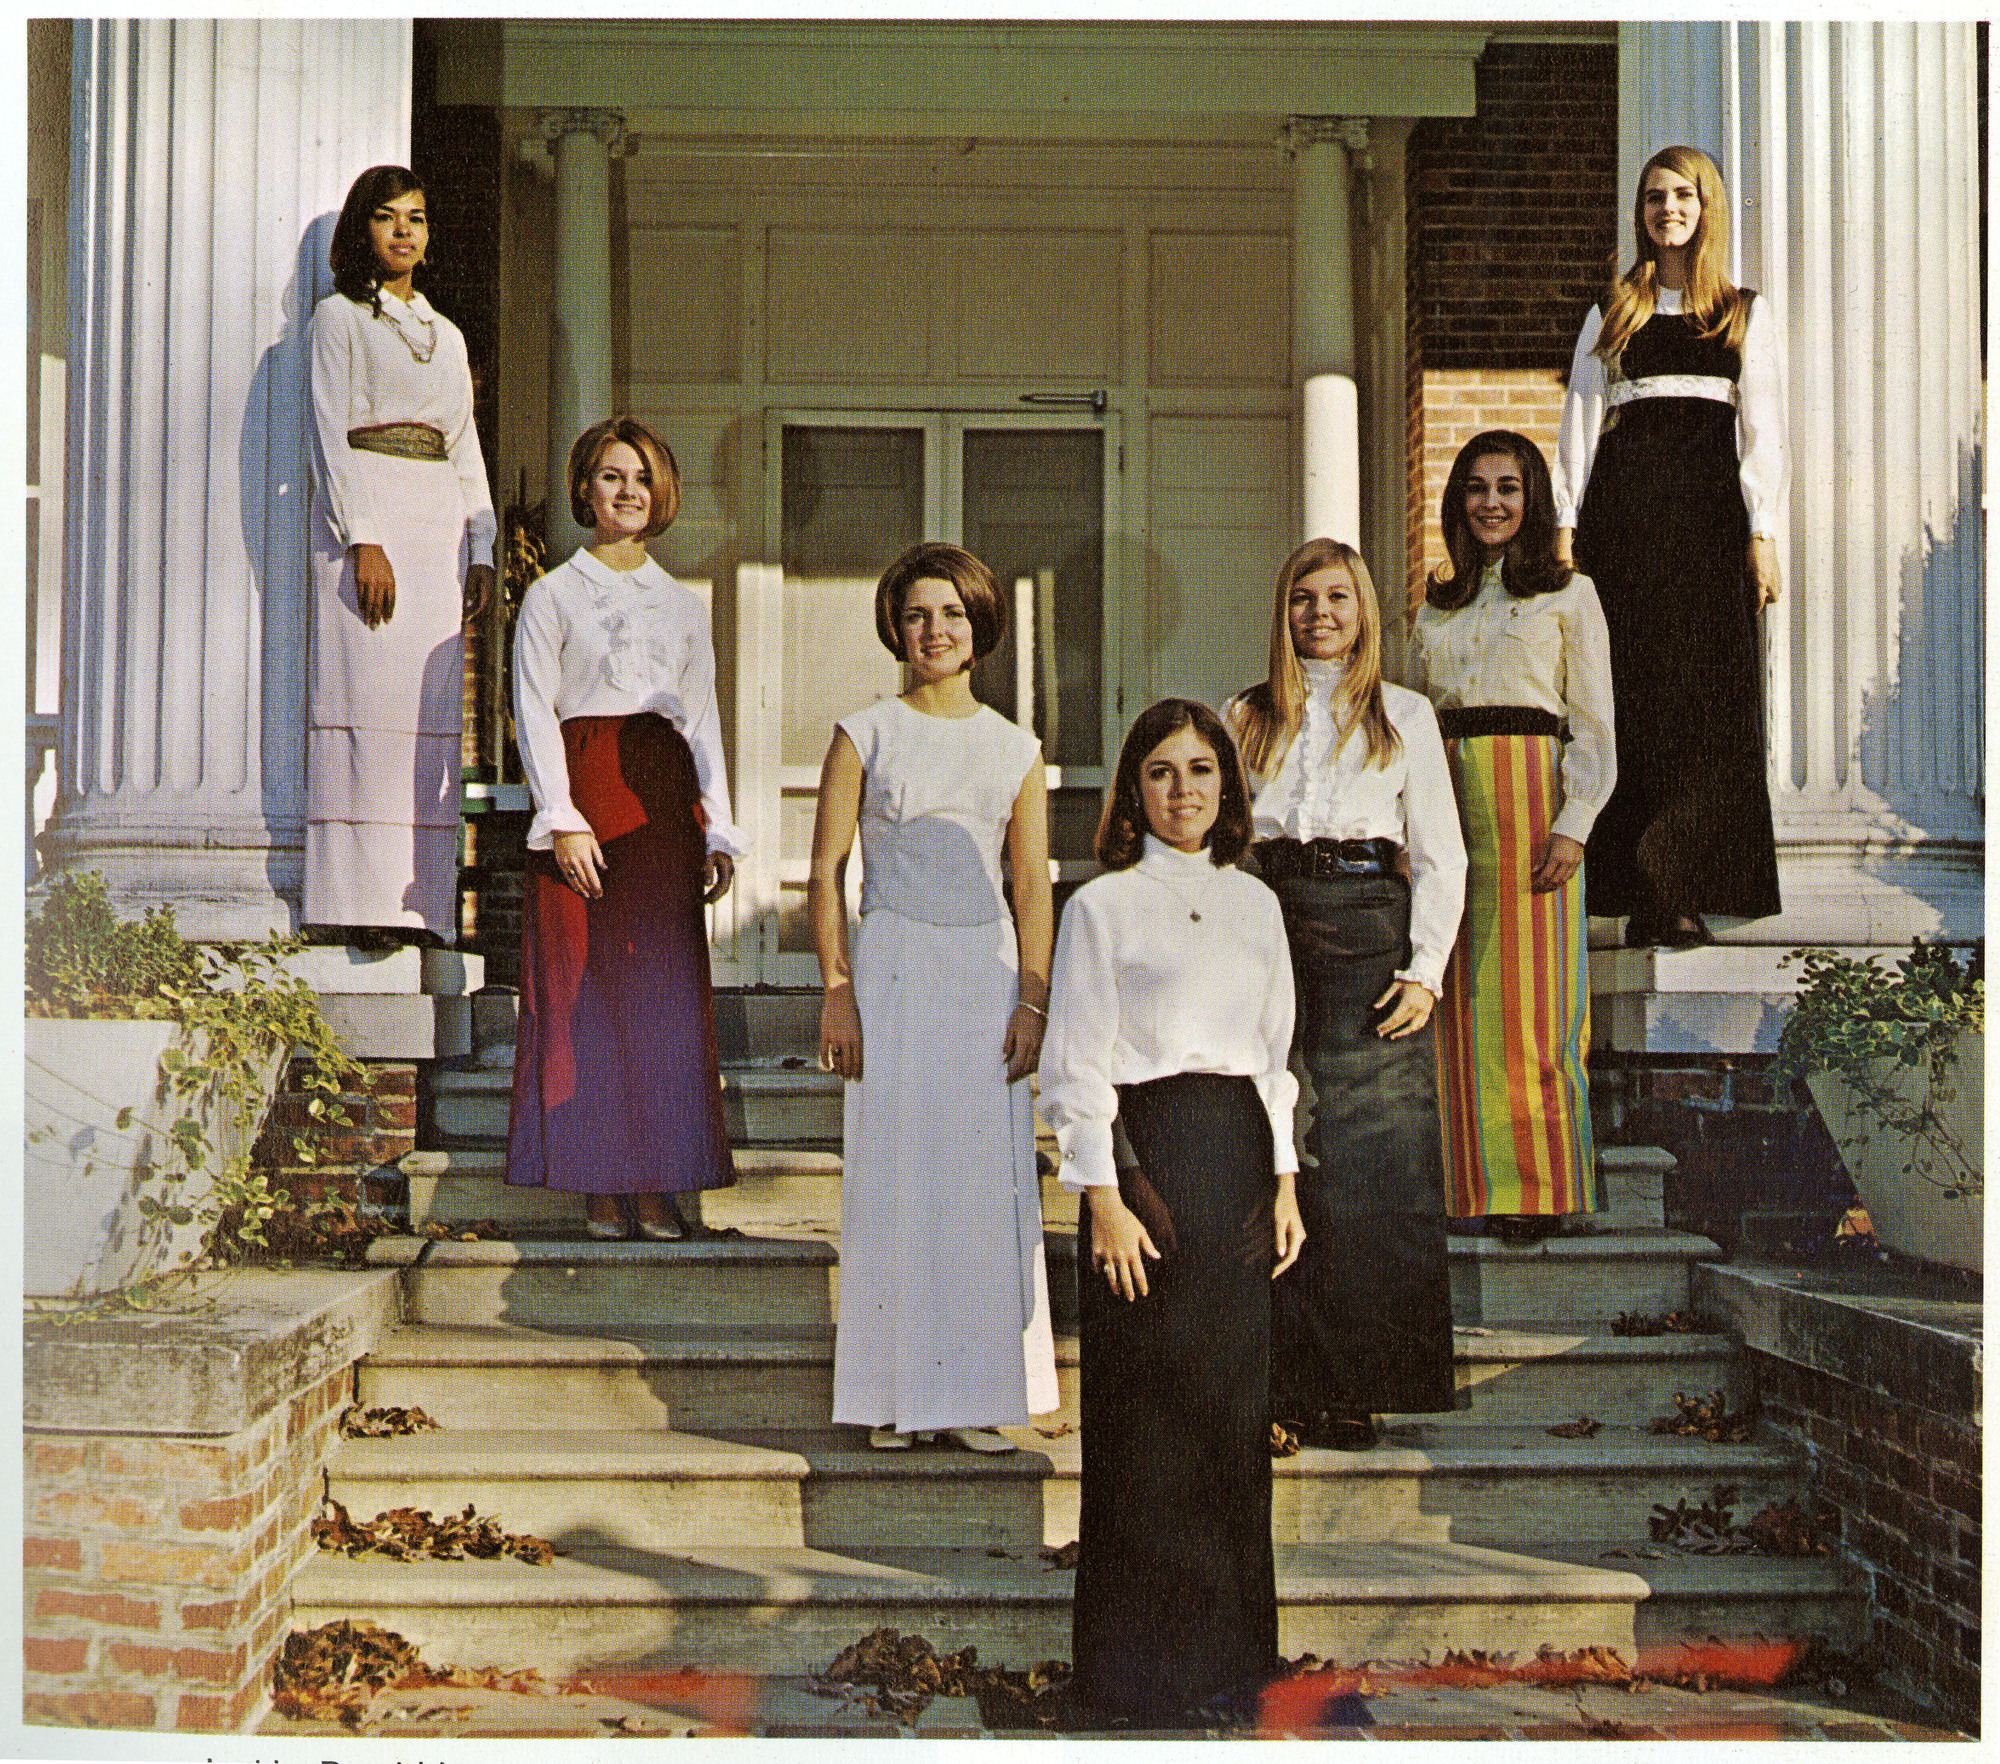 http://spec.lib.vt.edu/pickup/Omeka_upload/1968HomecomingCourt.jpg